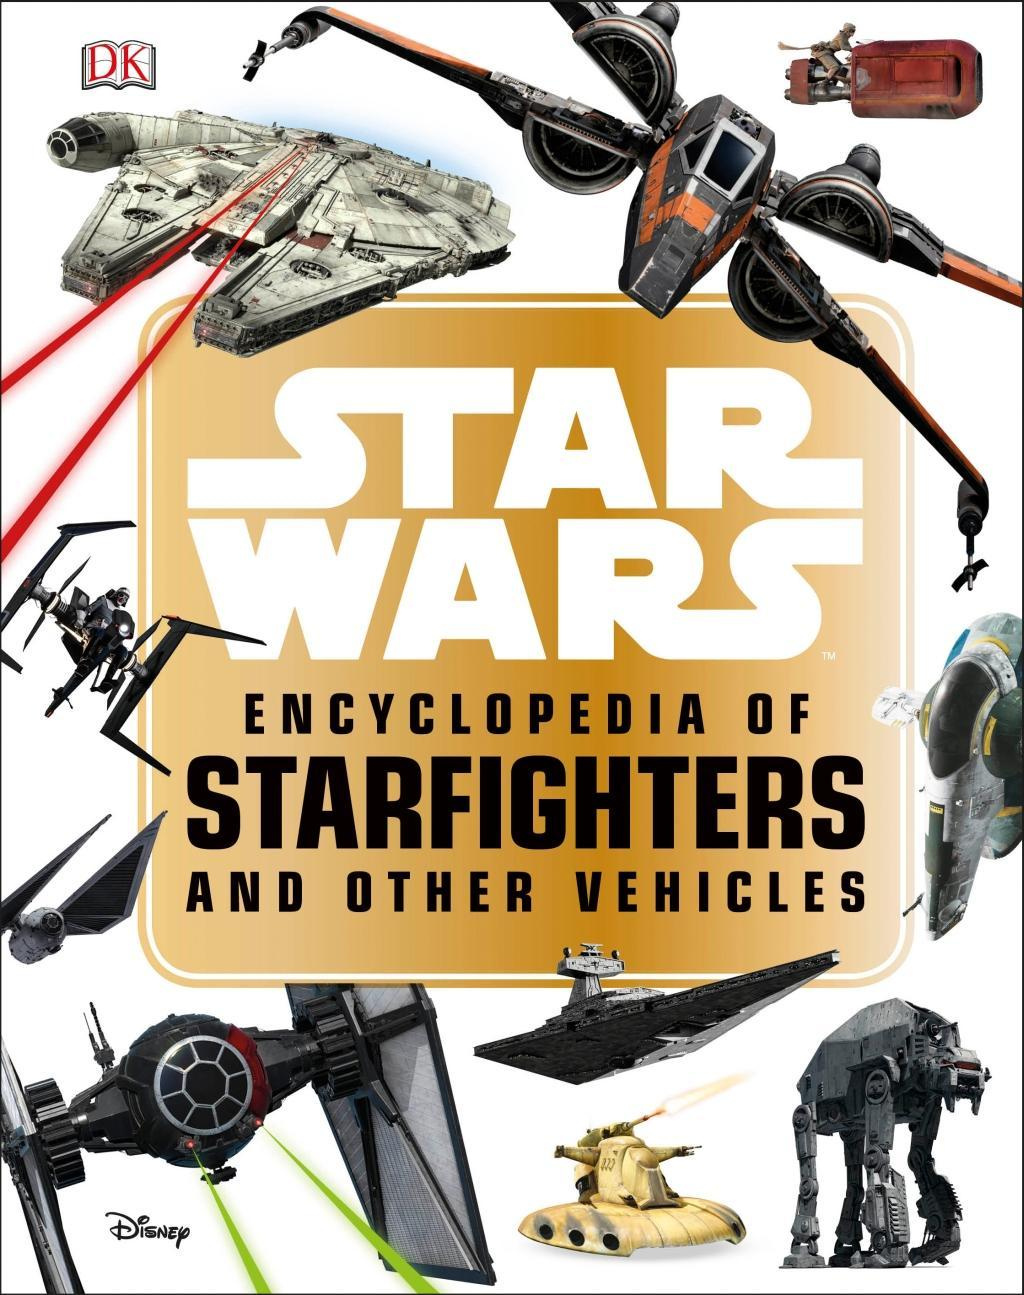 Star Wars Encyclopedia of Starfighters and Other Vehicles by DK, ISBN: 9781465466655